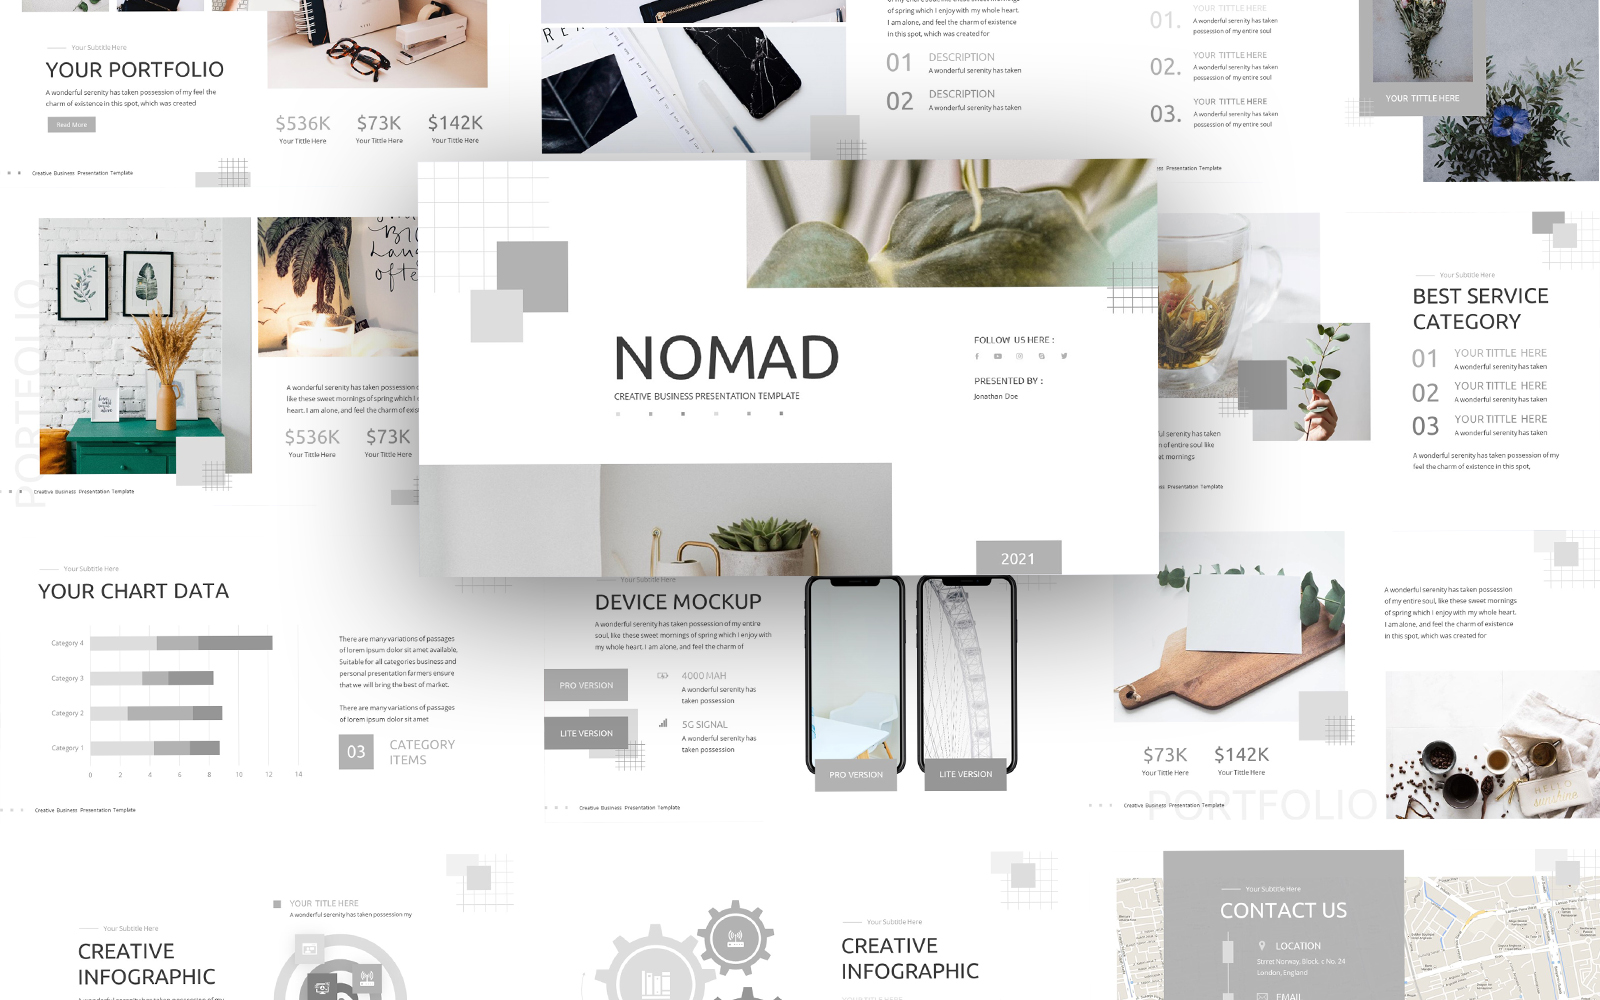 Nomad Creative Business Presentation PowerPoint Template